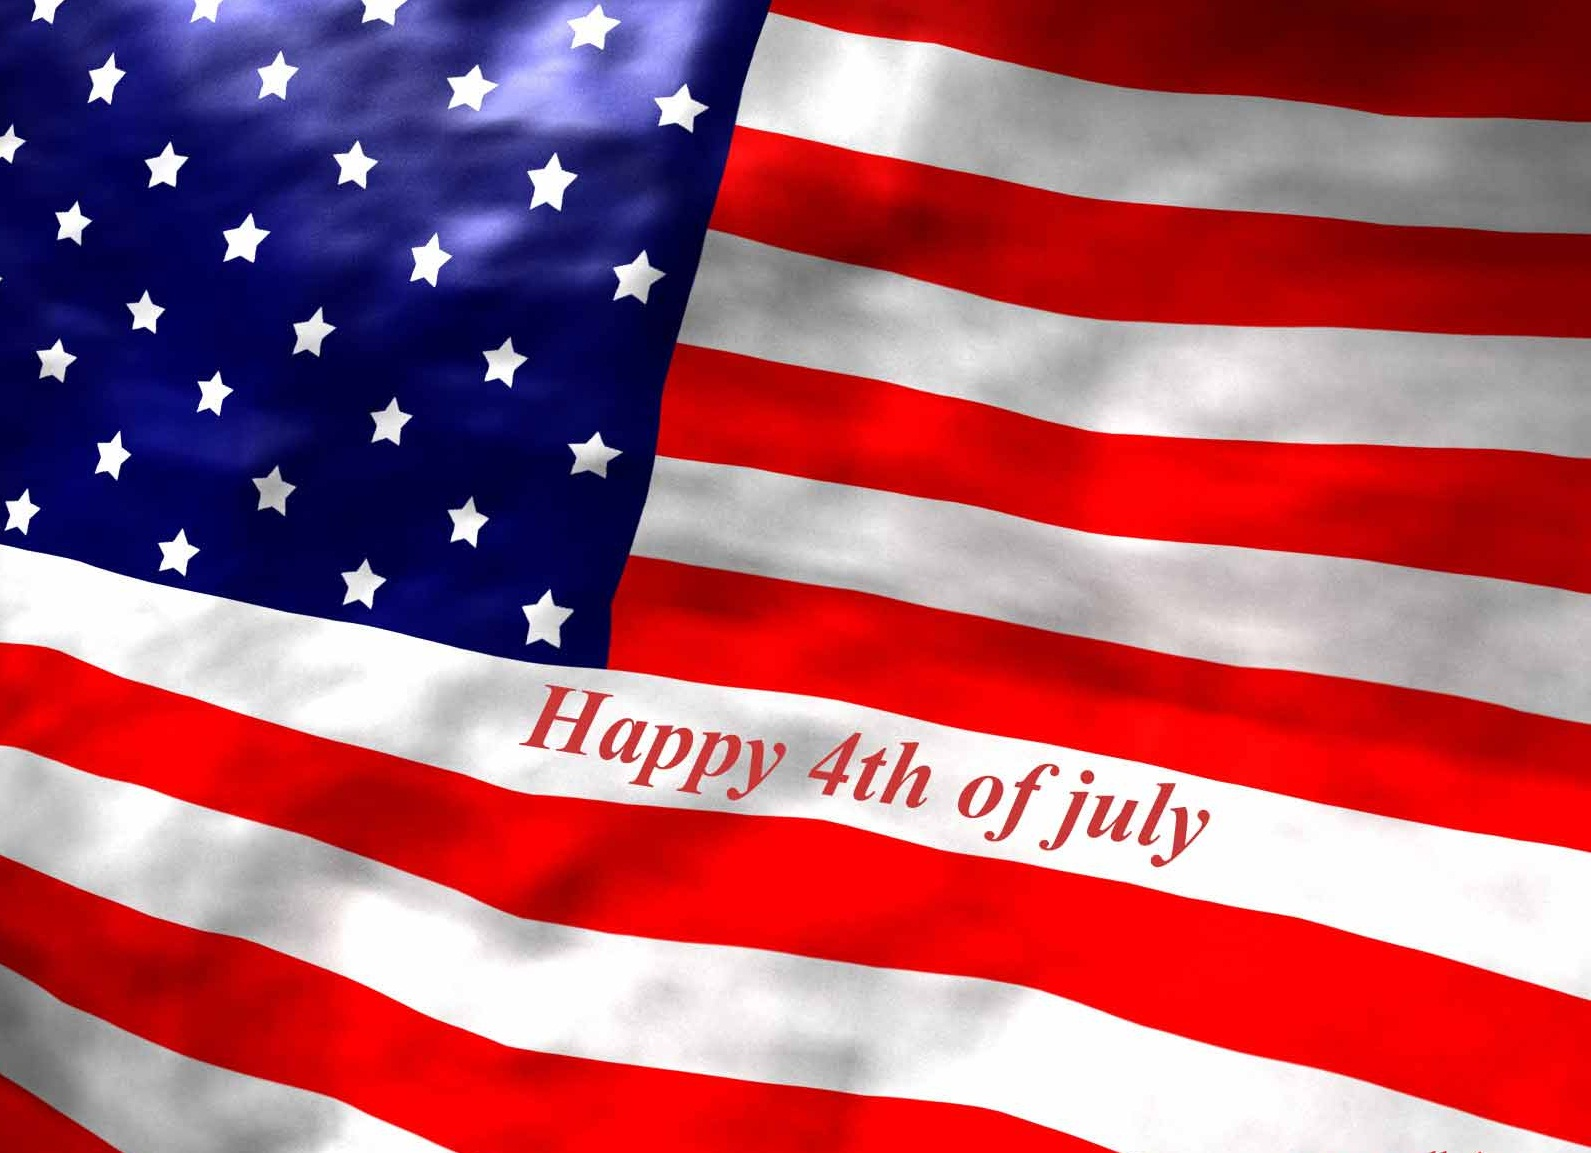 Happy 4th Of July 2014 >> Happy 4th Of July Sprogis And Neale Blog Boston Ma Real Estate